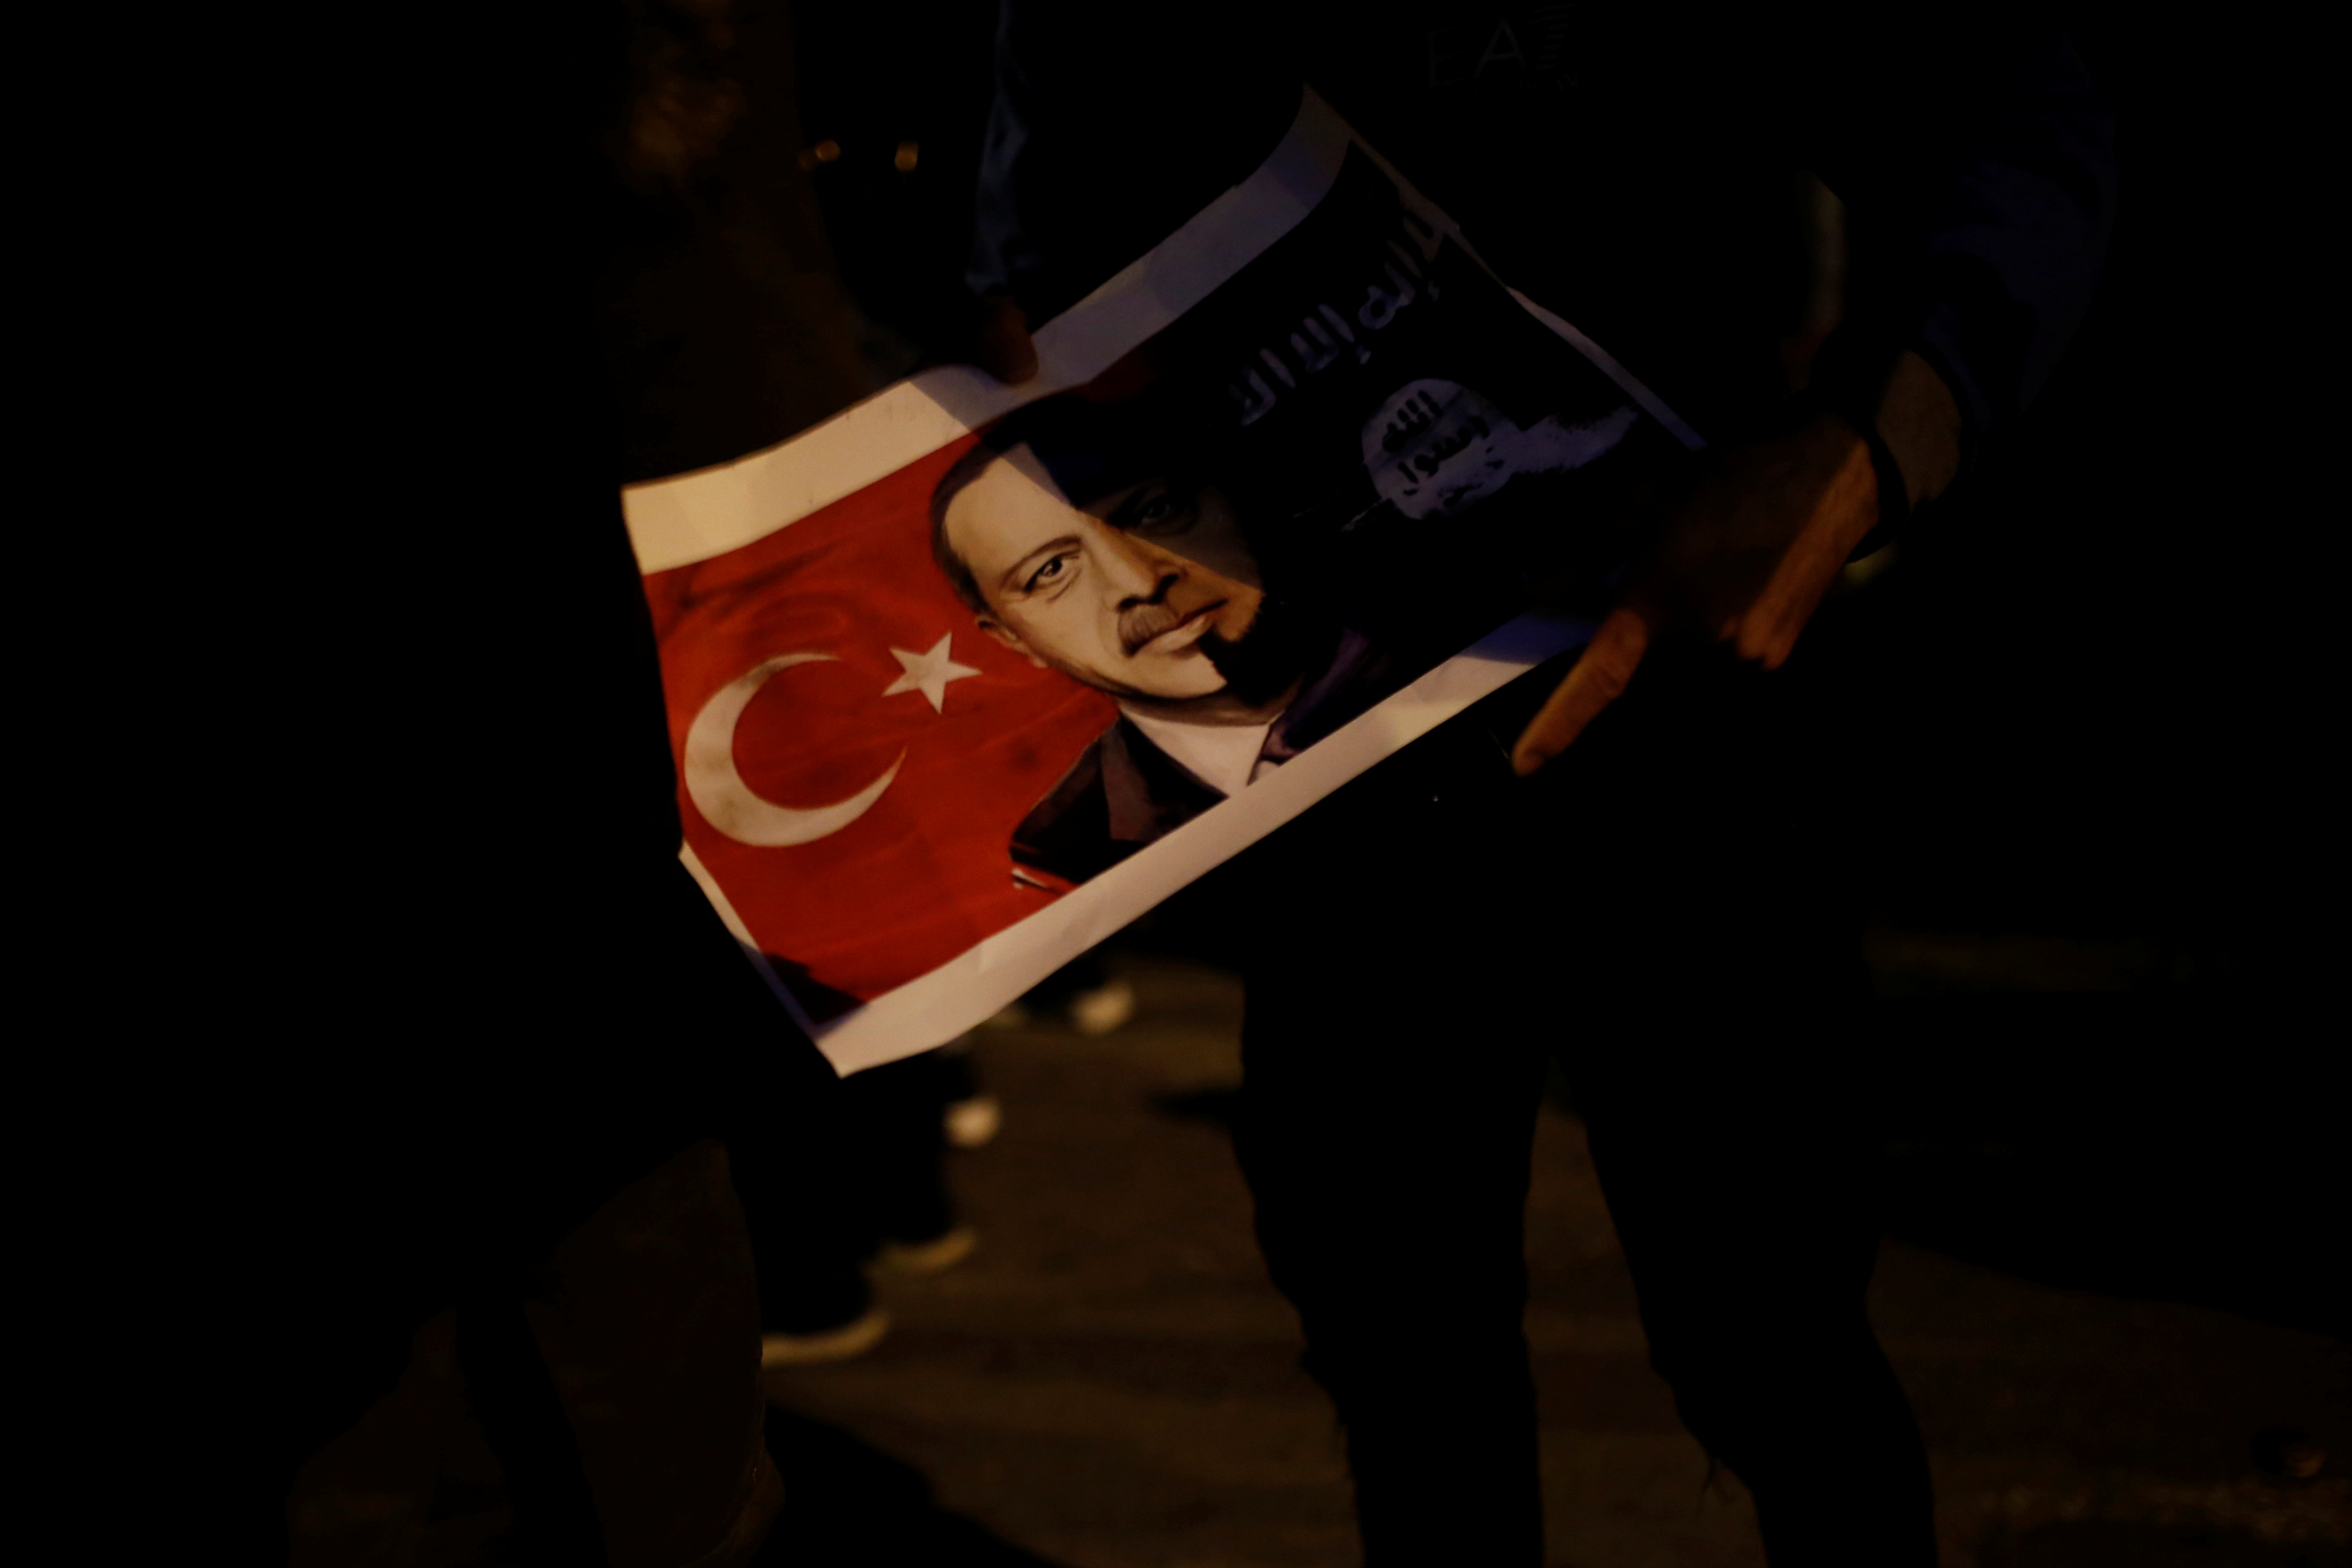 The new geopolitics of Turkey, Syria, and the West